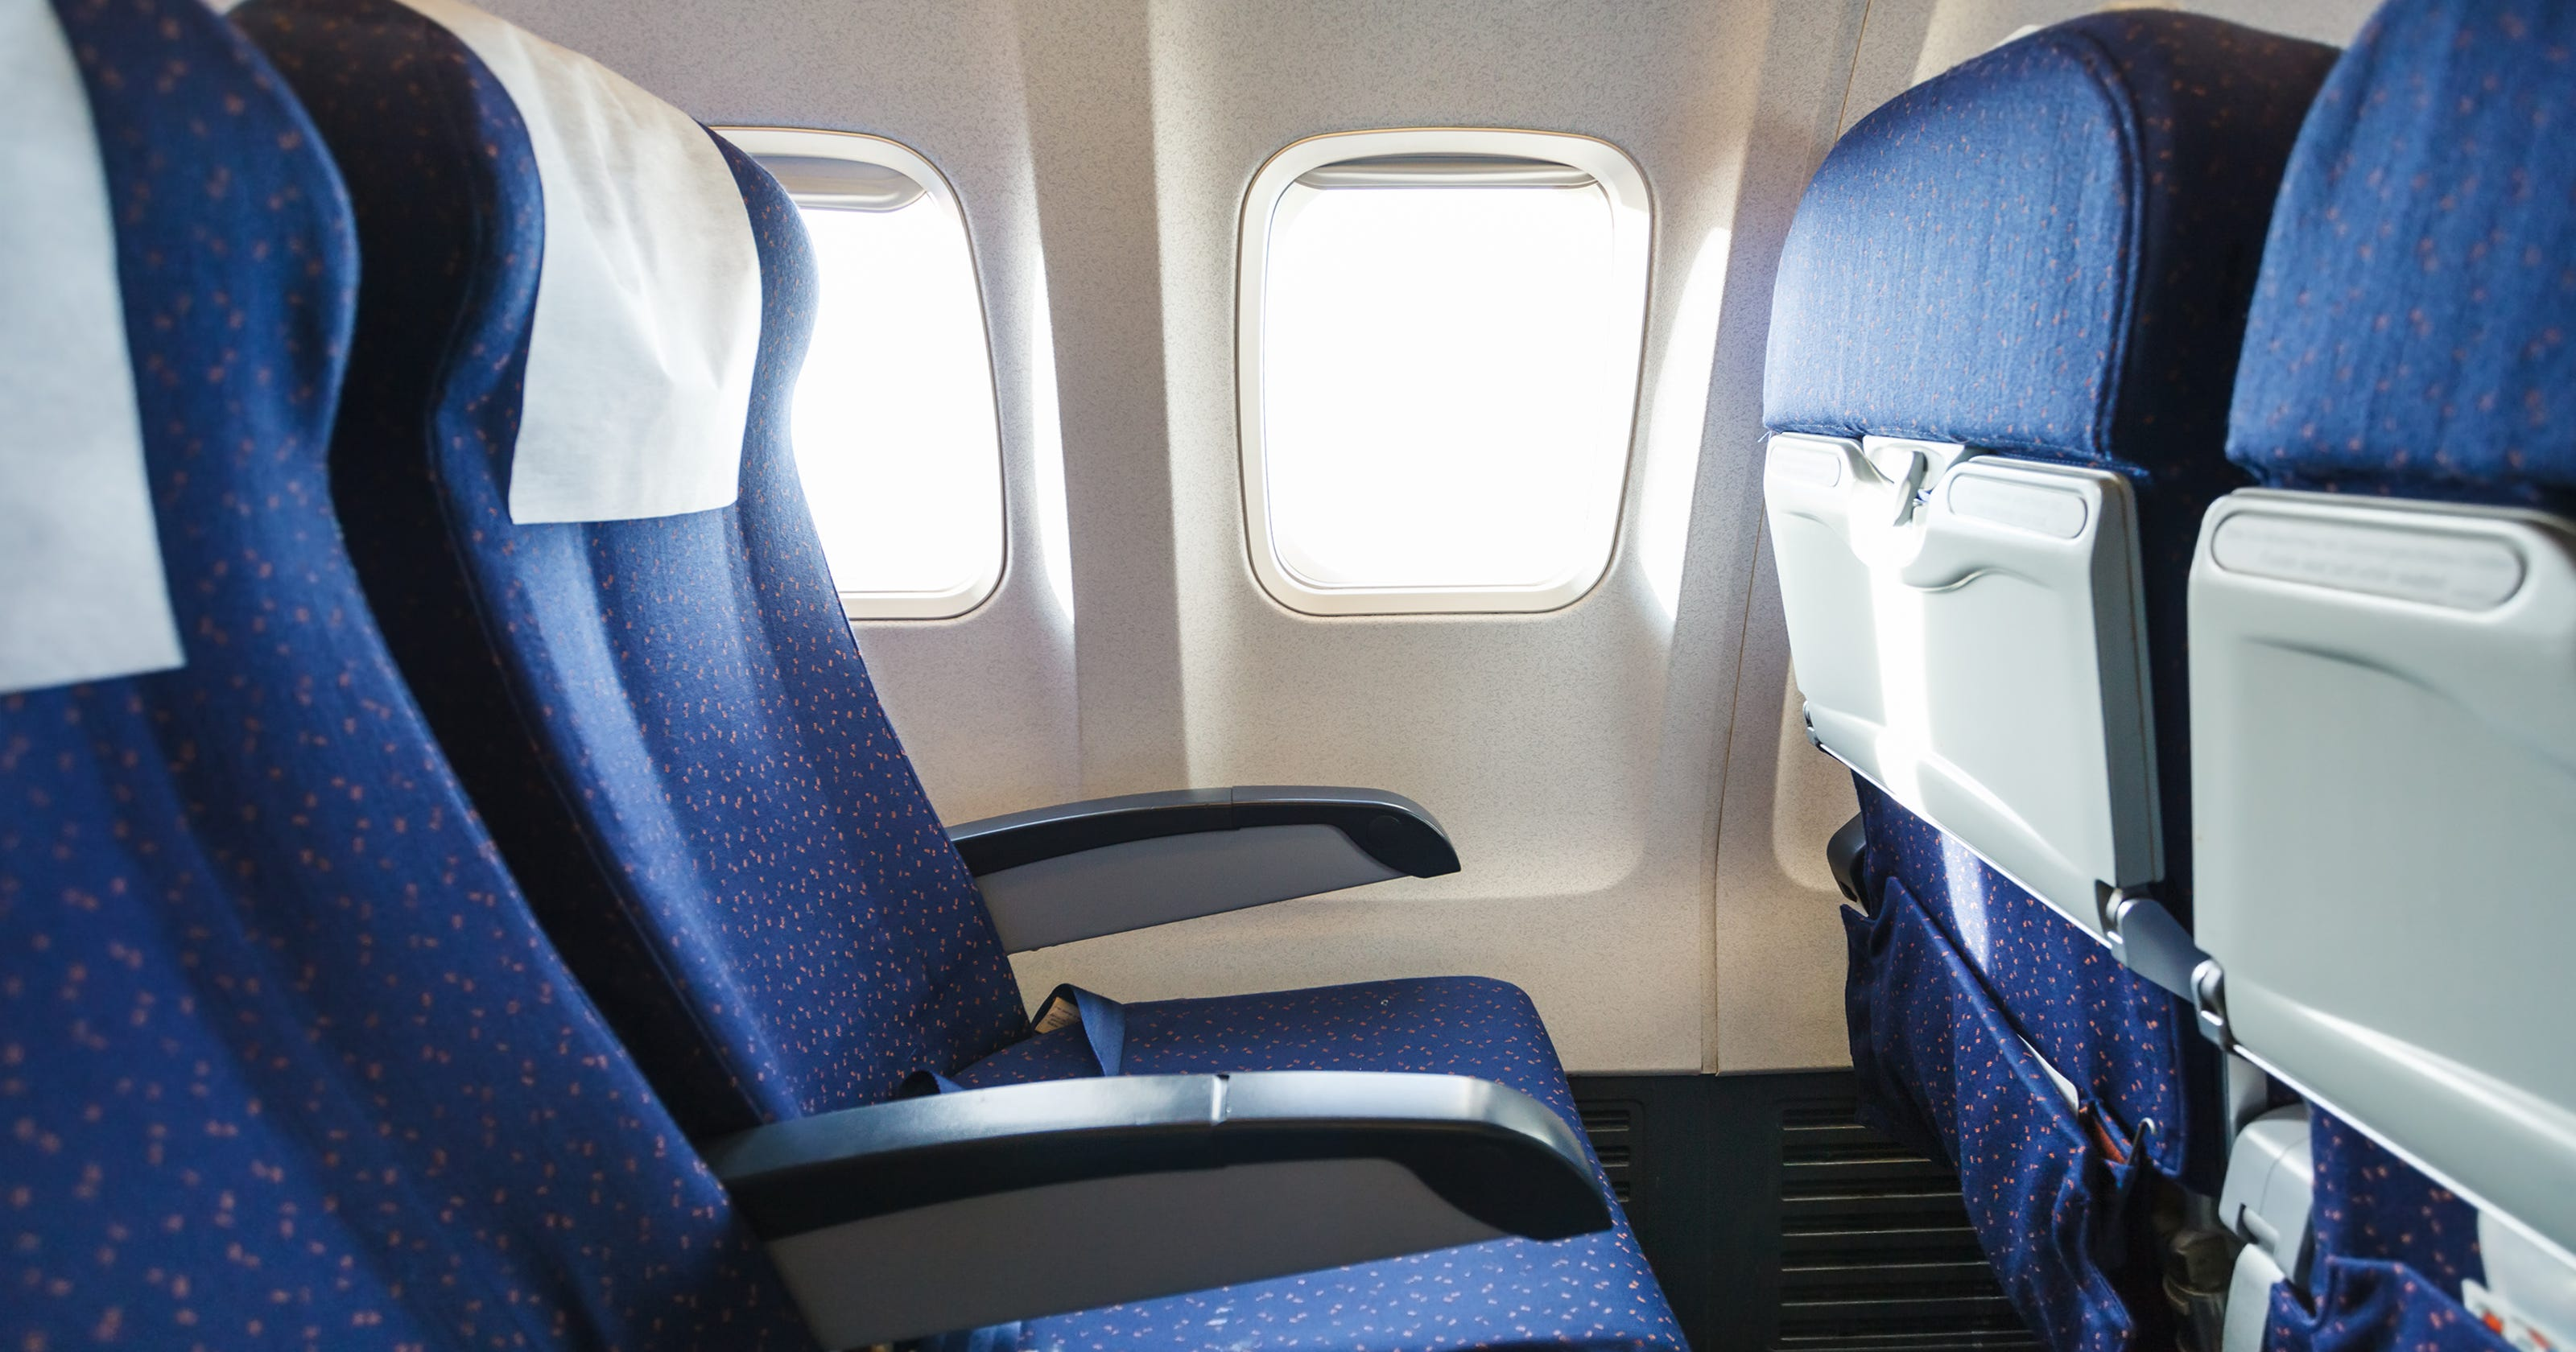 The worst places to sit on a plane